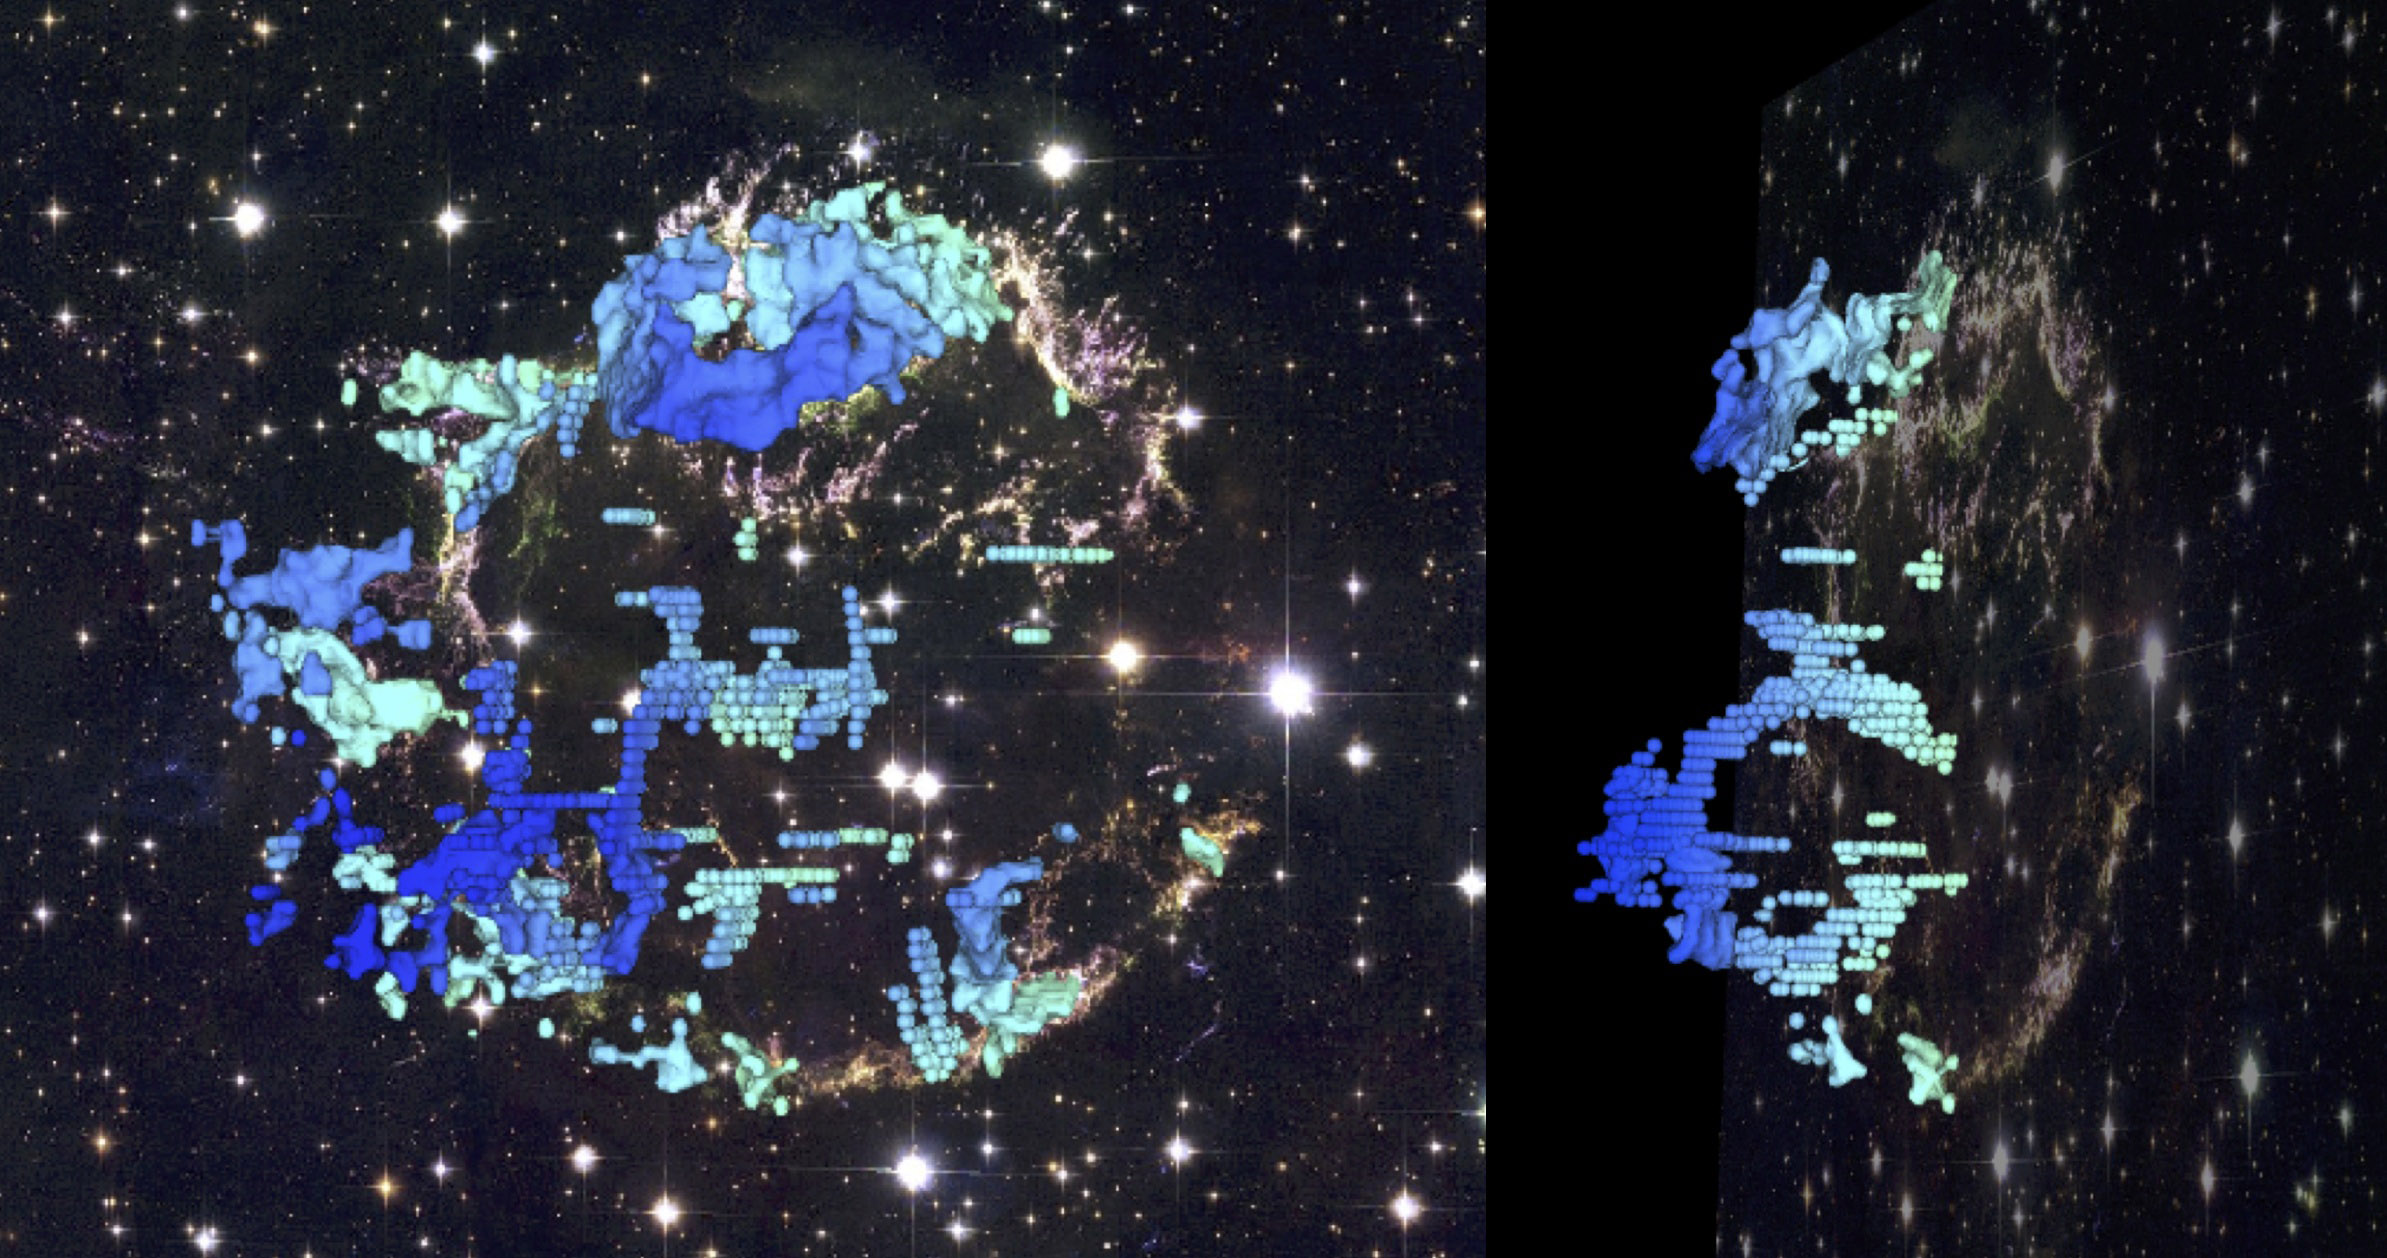 Two different perspectives of the 3-d reconstruction of Cassiopeia A, overlaid on a Hubble composite image of Cas A. The blue-to-red colors on the 3-d map indicate the relative speeds of the gas along our line of sight.